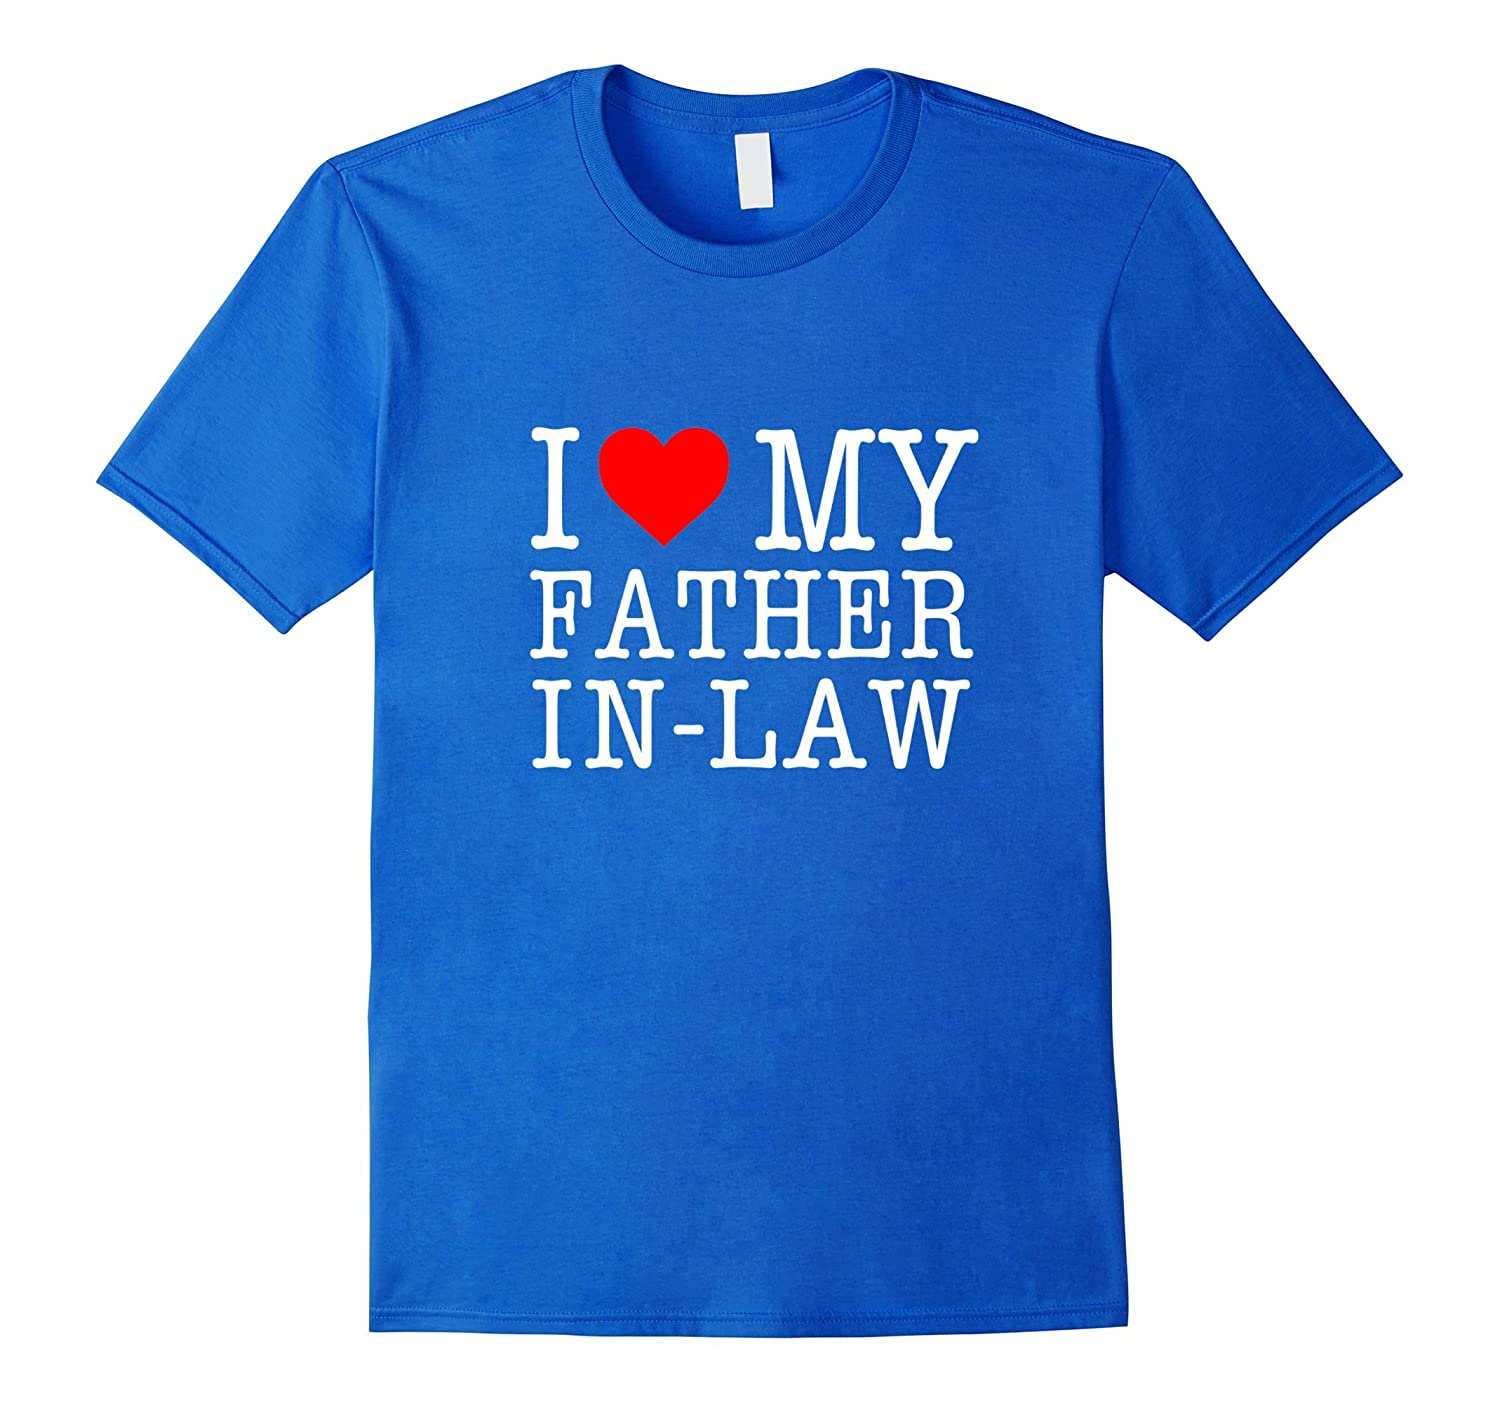 'I Love My Father-in-Law' - T-Shirt-ah my shirt one gift